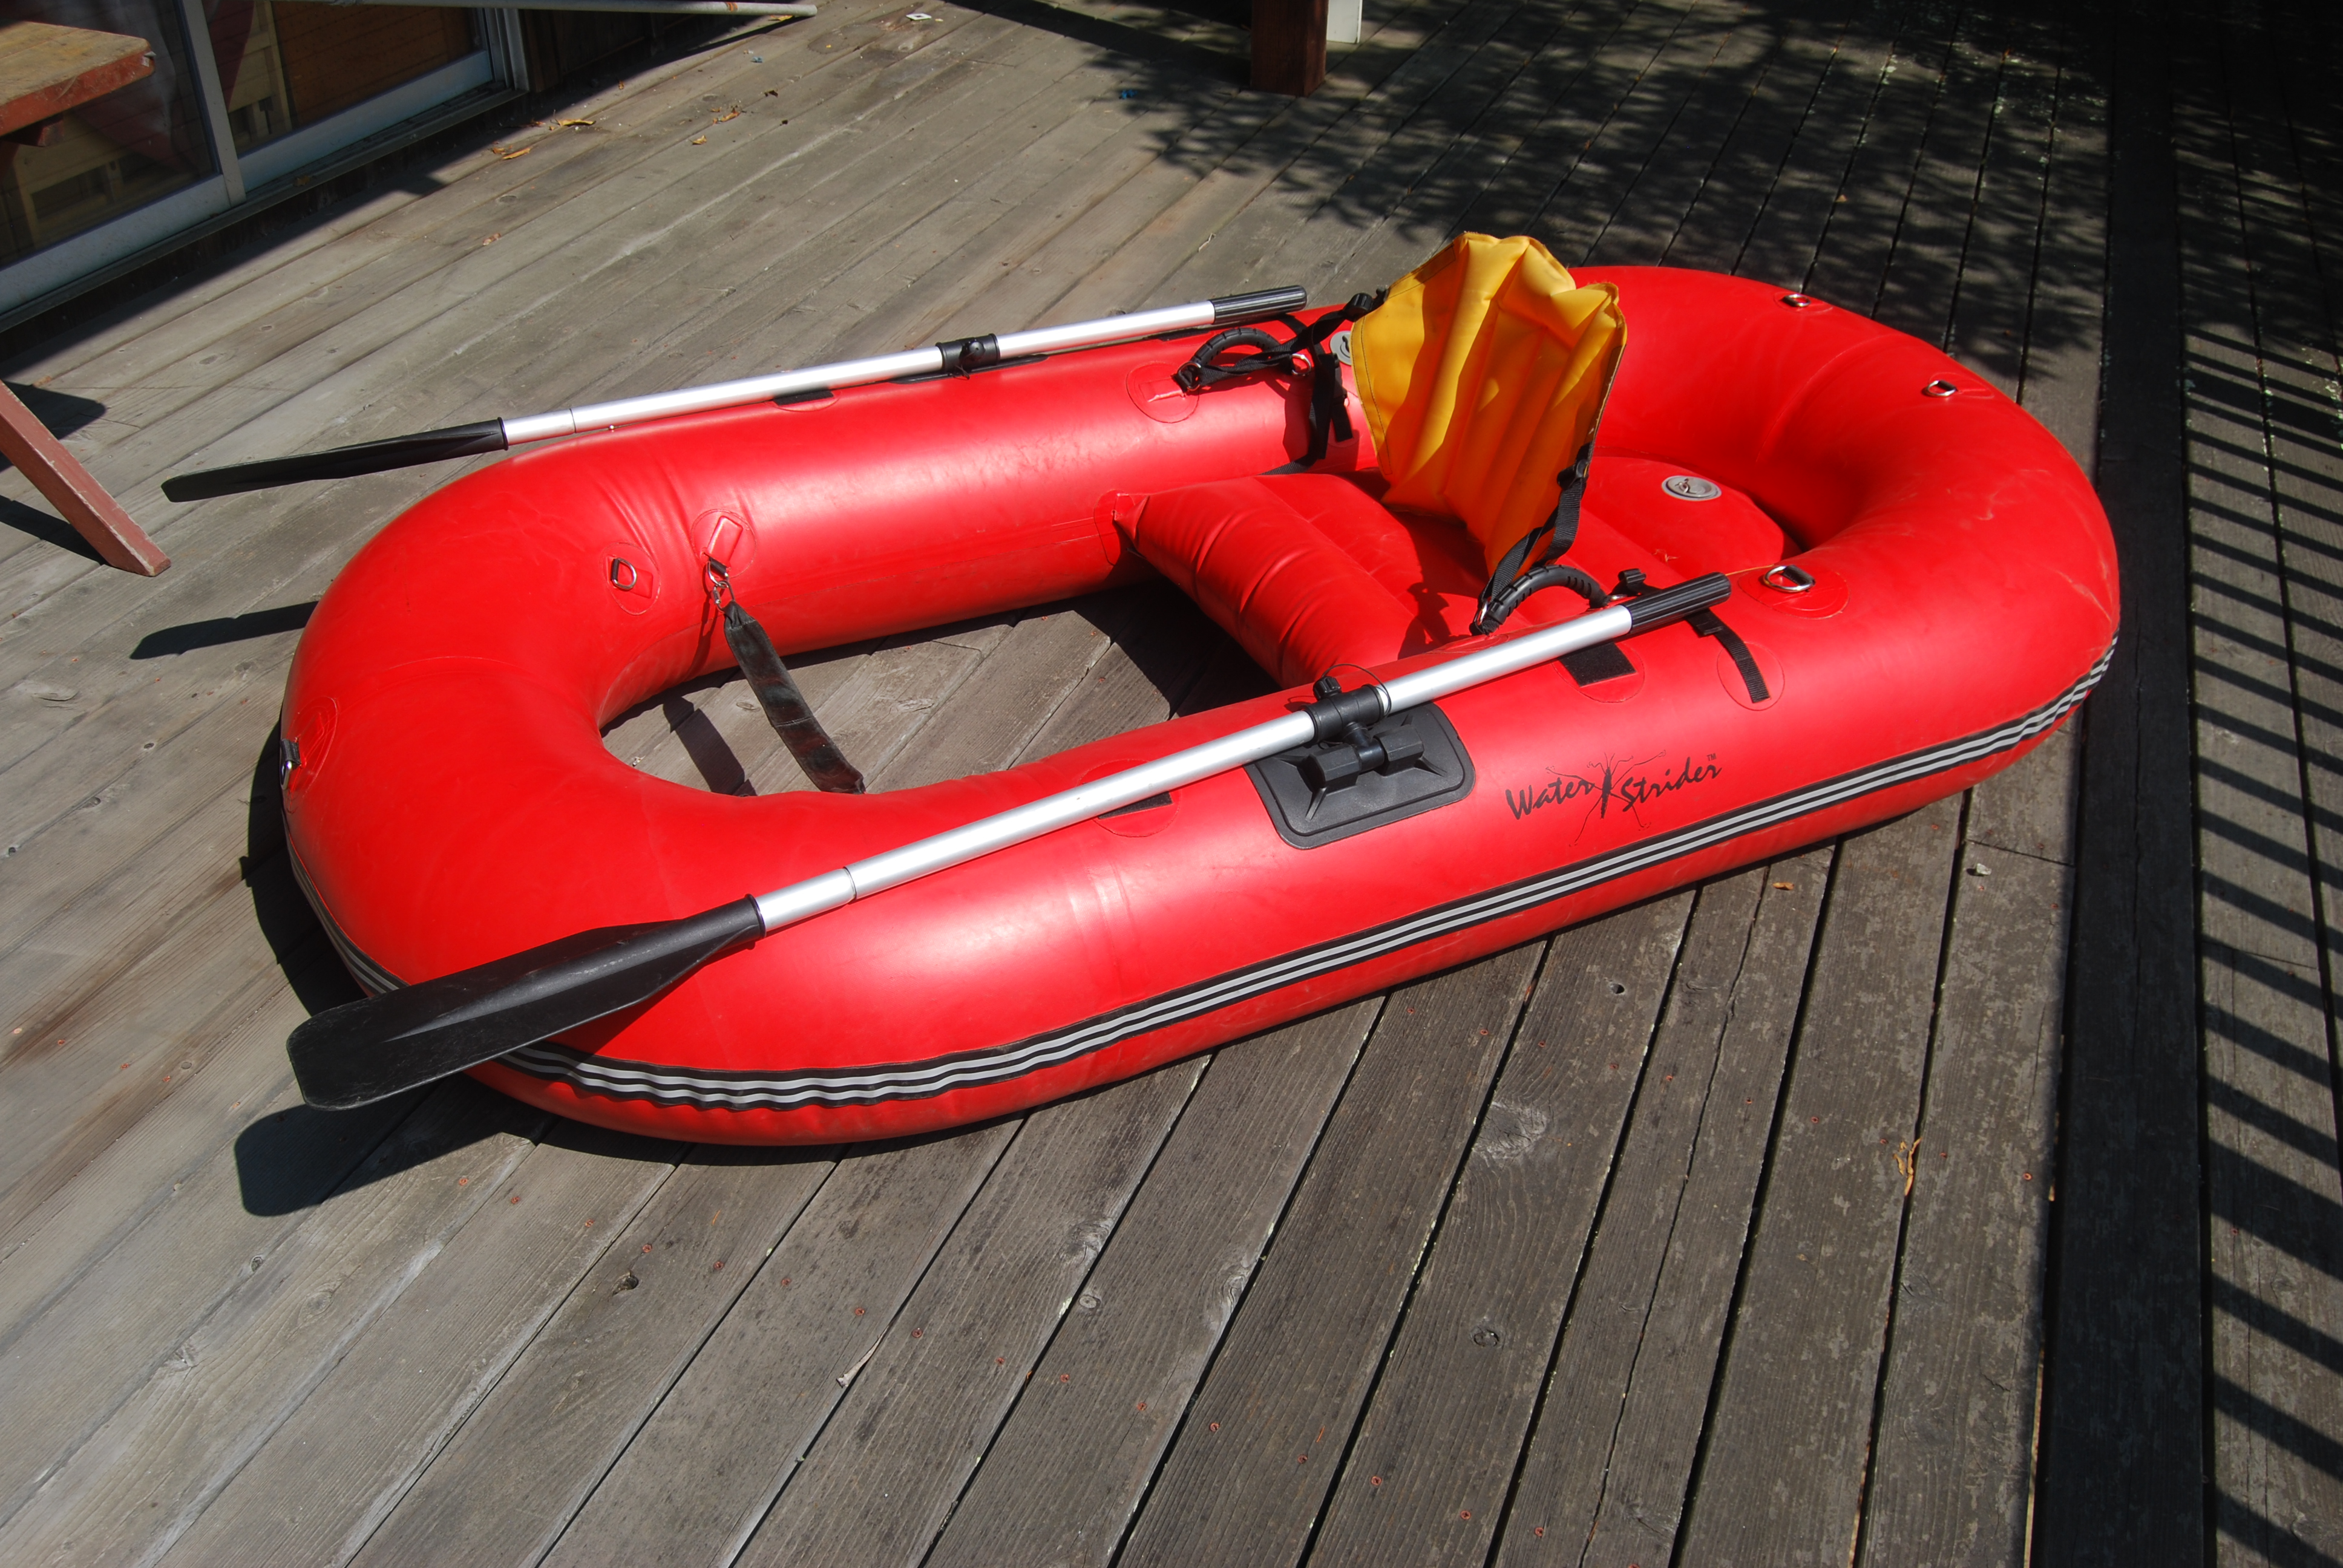 Image for WATER STRIDER RAFT KICKBOAT. Complete with 3-pc. Oars, Inflatable Back Rest, Kickboat Fins, Foot Model Pump, Ruled Stripping Apron, Patch Kit, Backpack to carry Raft, Expedition Bag, Electric Inflator.